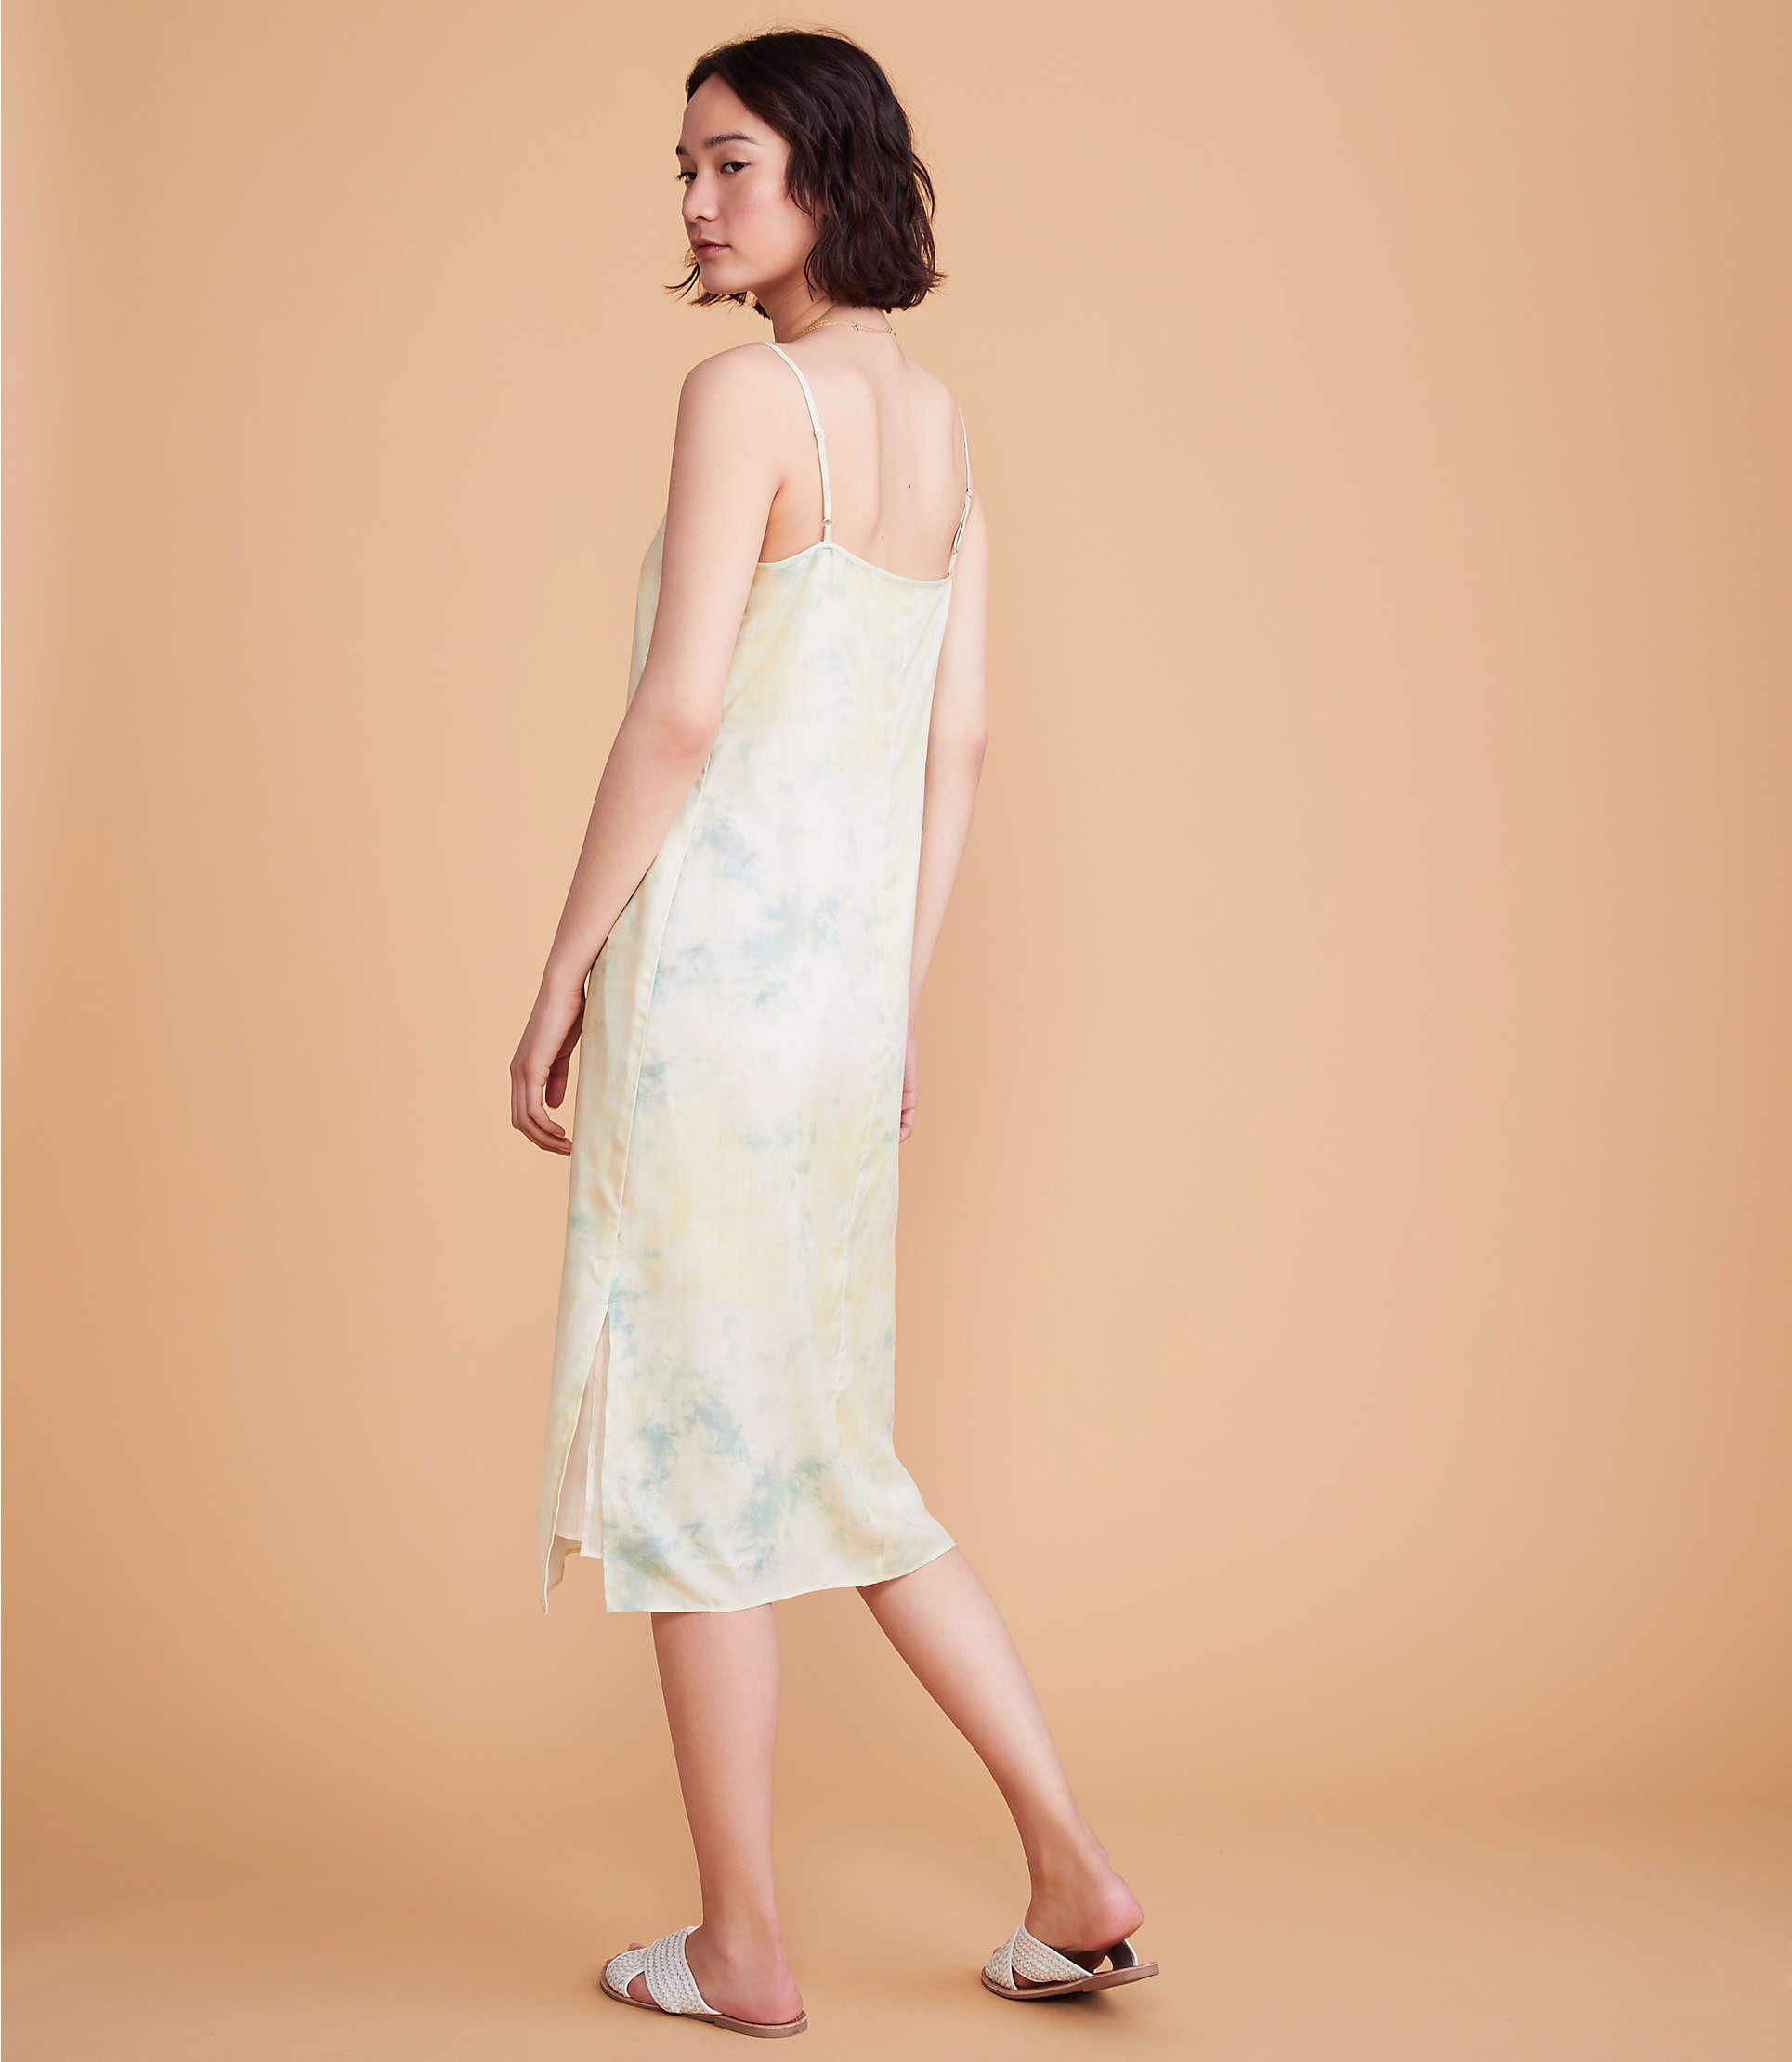 5403a1c018fb ... Lou & Grey Tie Dye Silky Midi Slip Dress - Lyst. View fullscreen